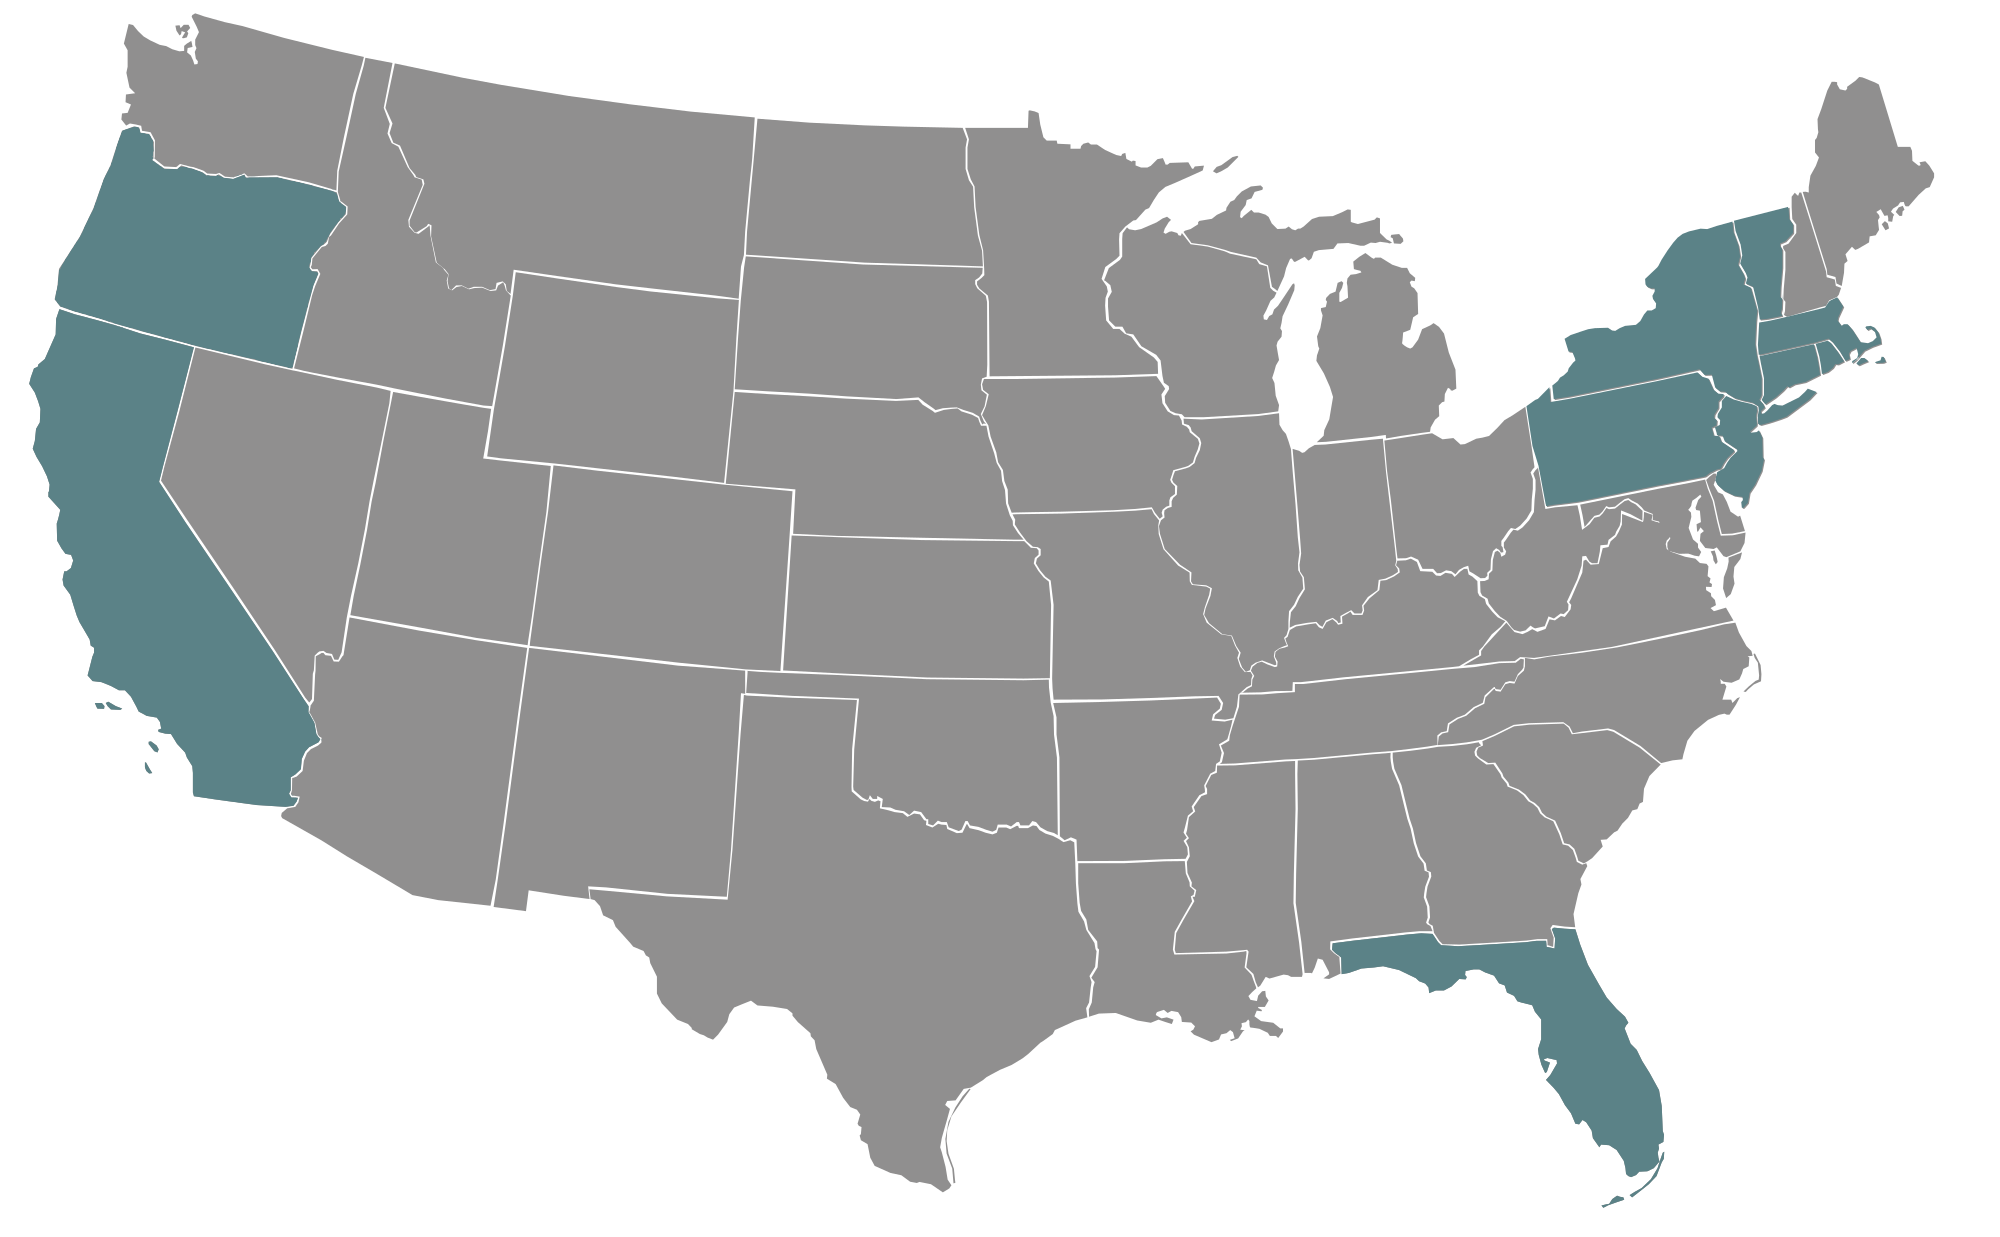 proper-o-leary-licensed-states-map-2021